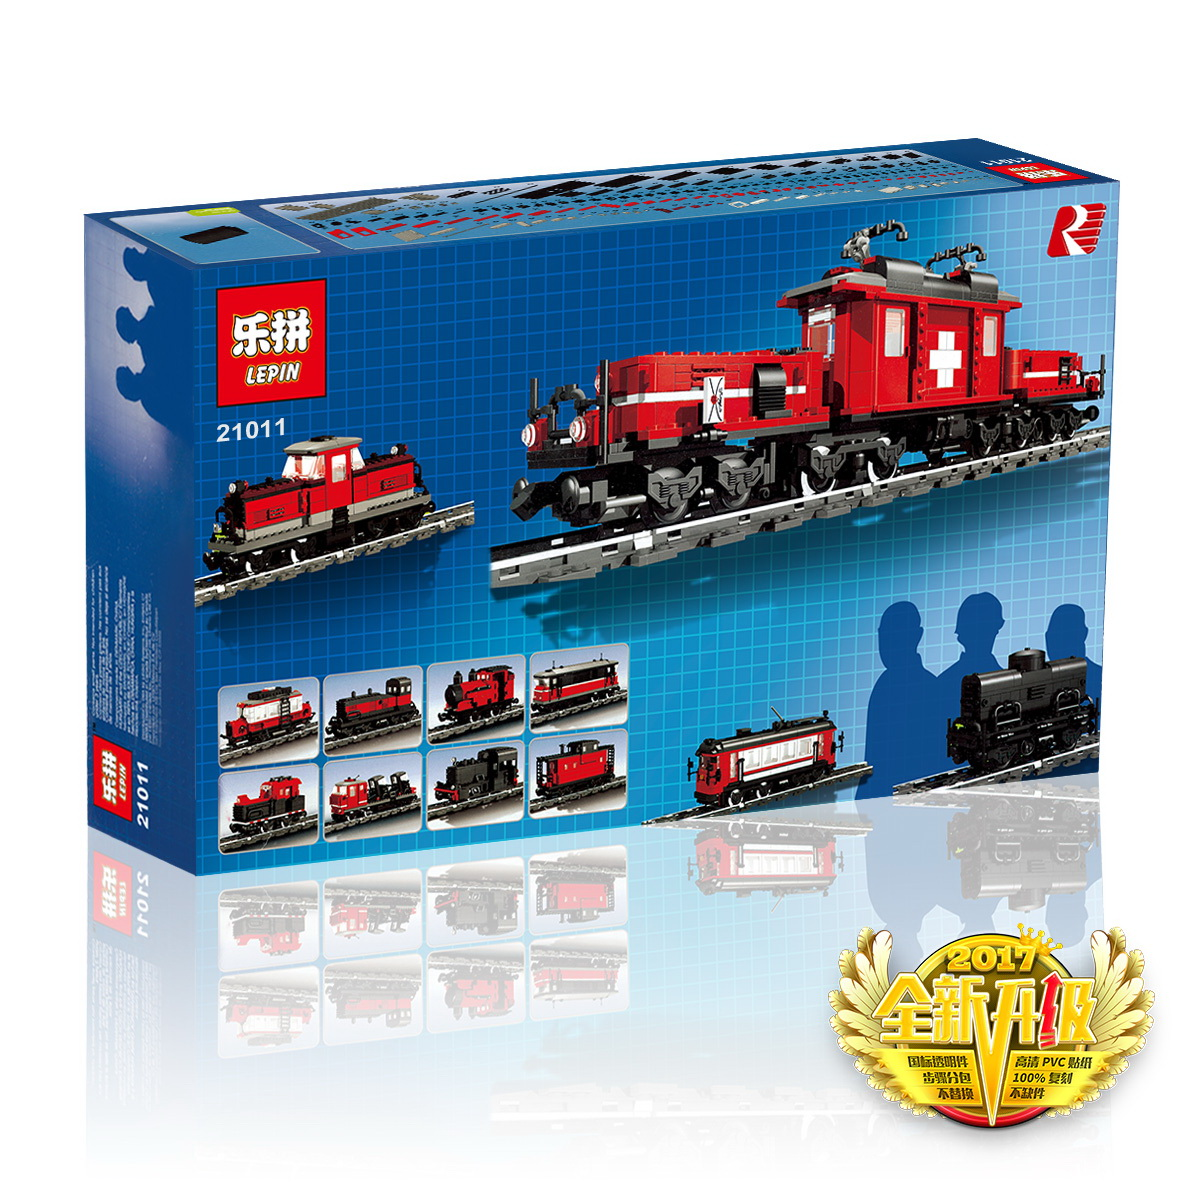 1130+ PCS Building Bricks, LP 21011 Building Blocks 10183 Hobby Trains Factory Building your way.